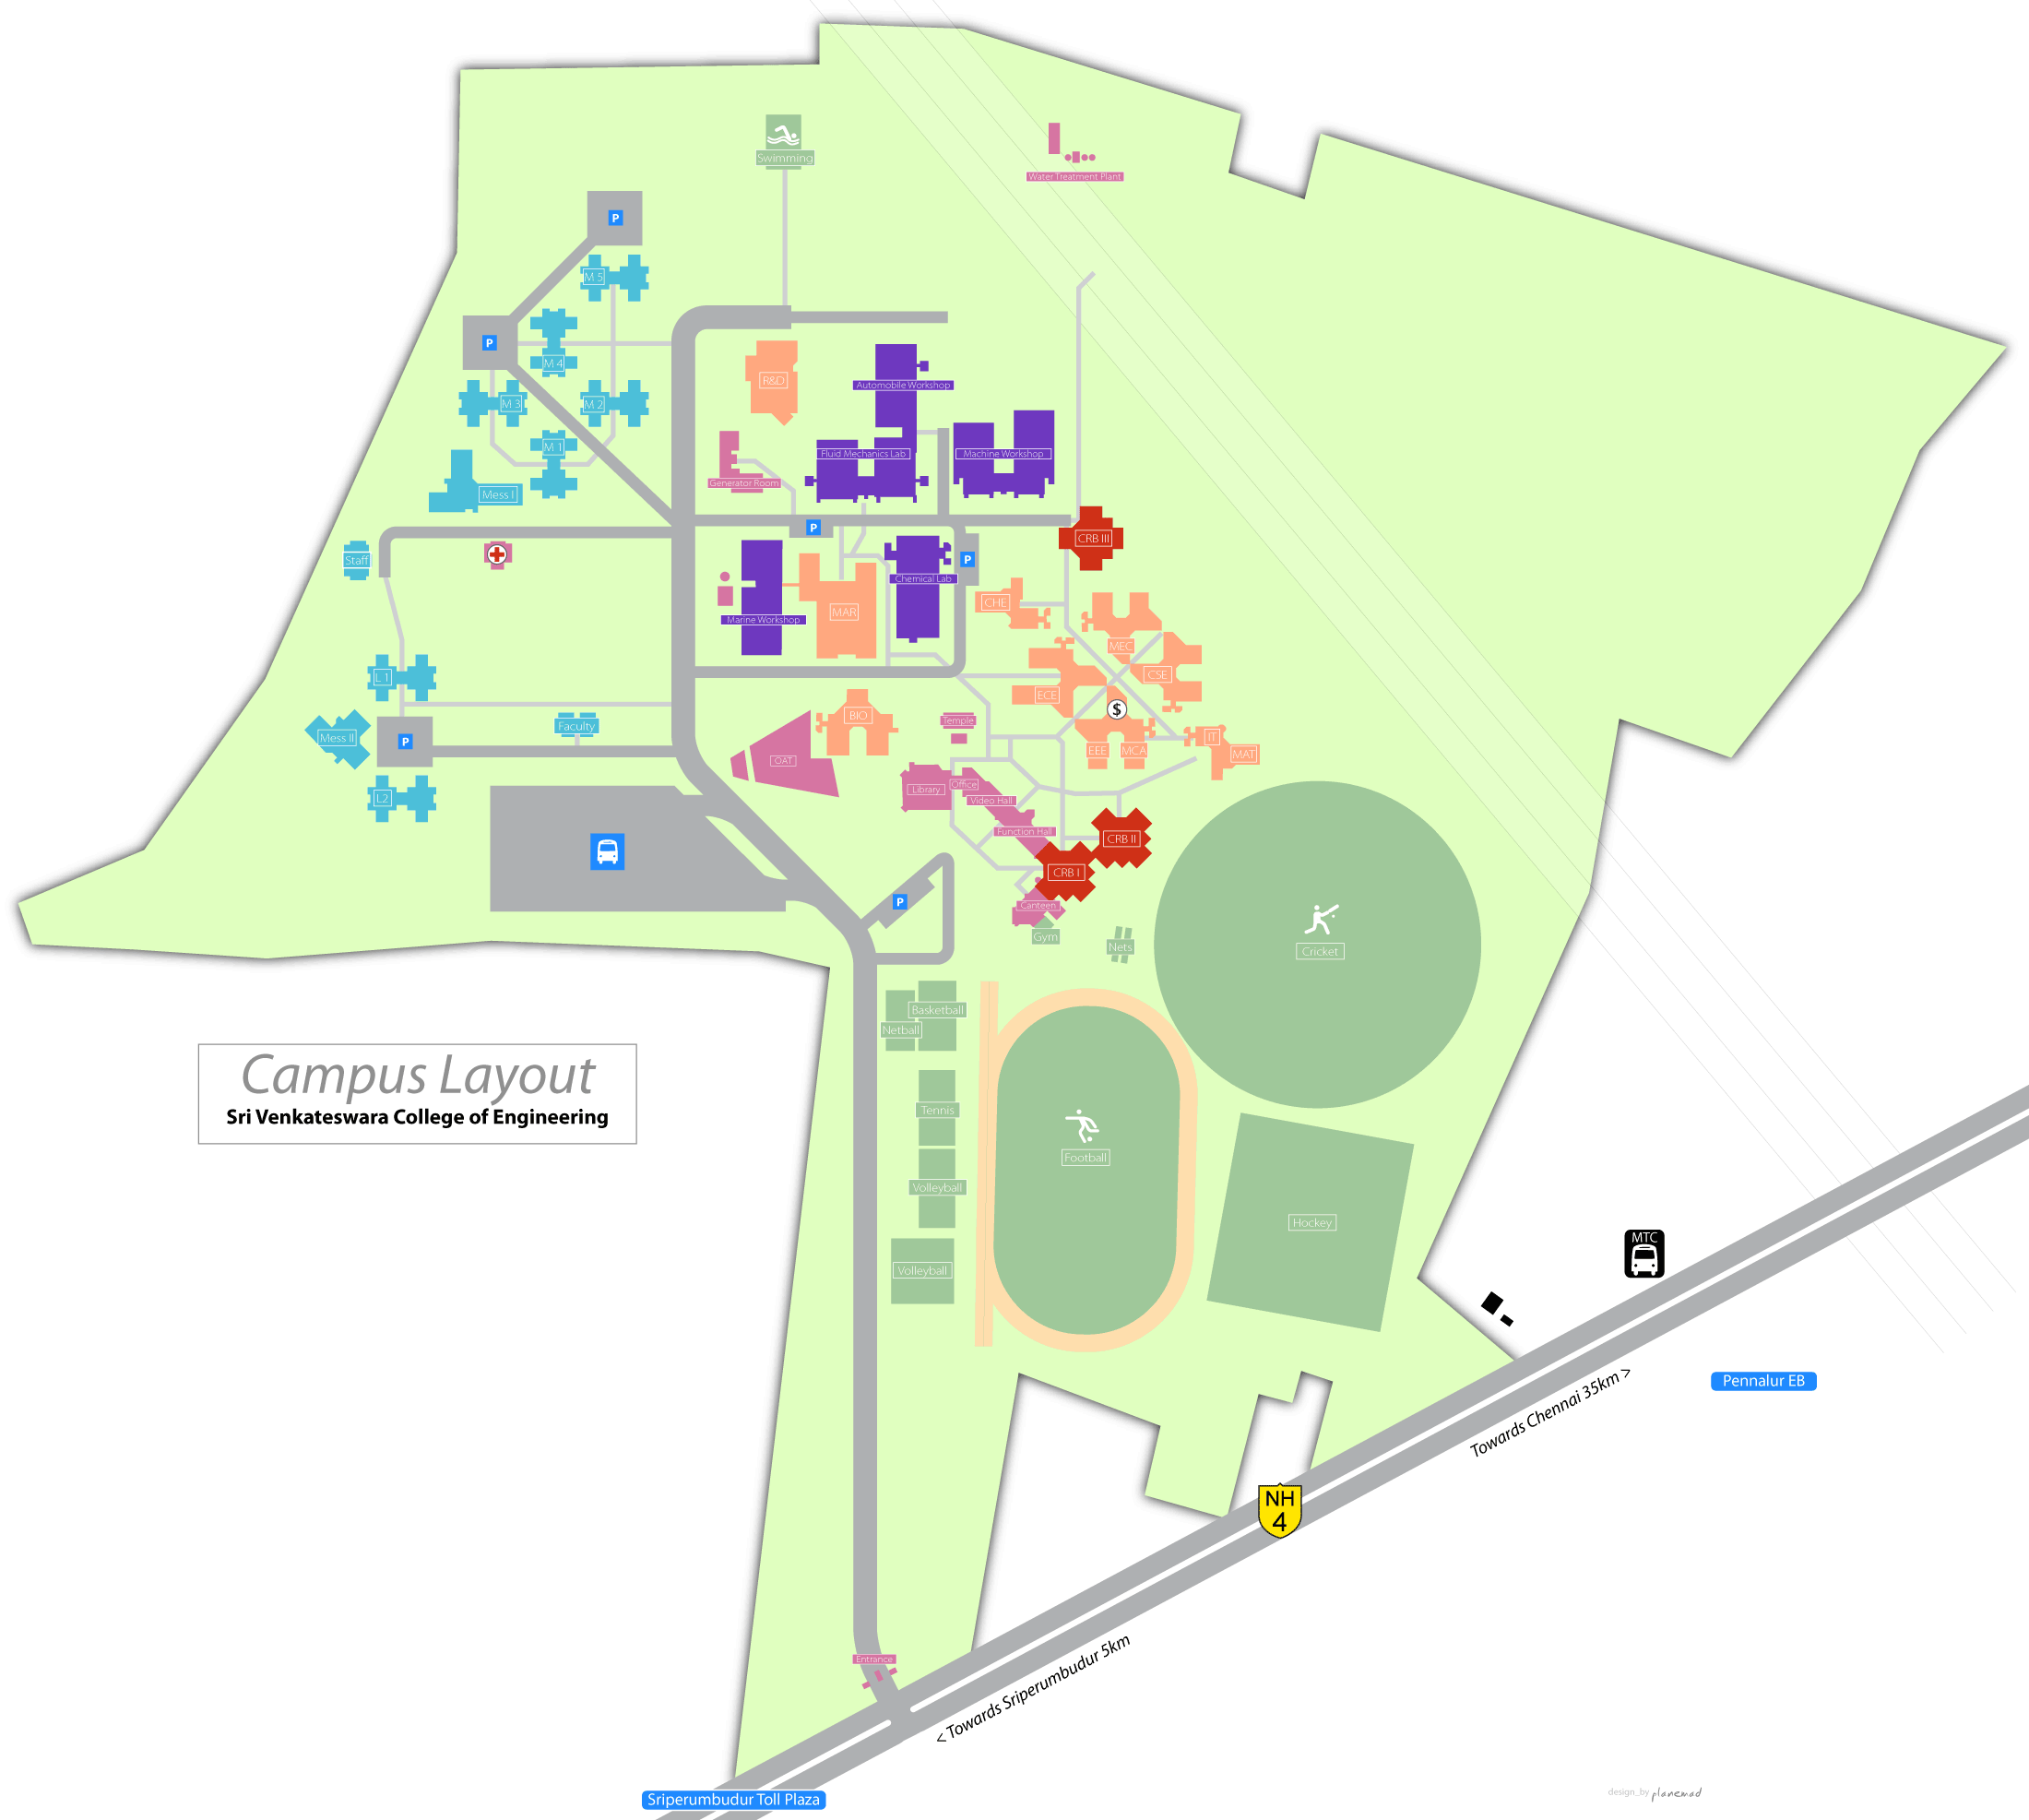 file svce campus layout map png wikimedia commons